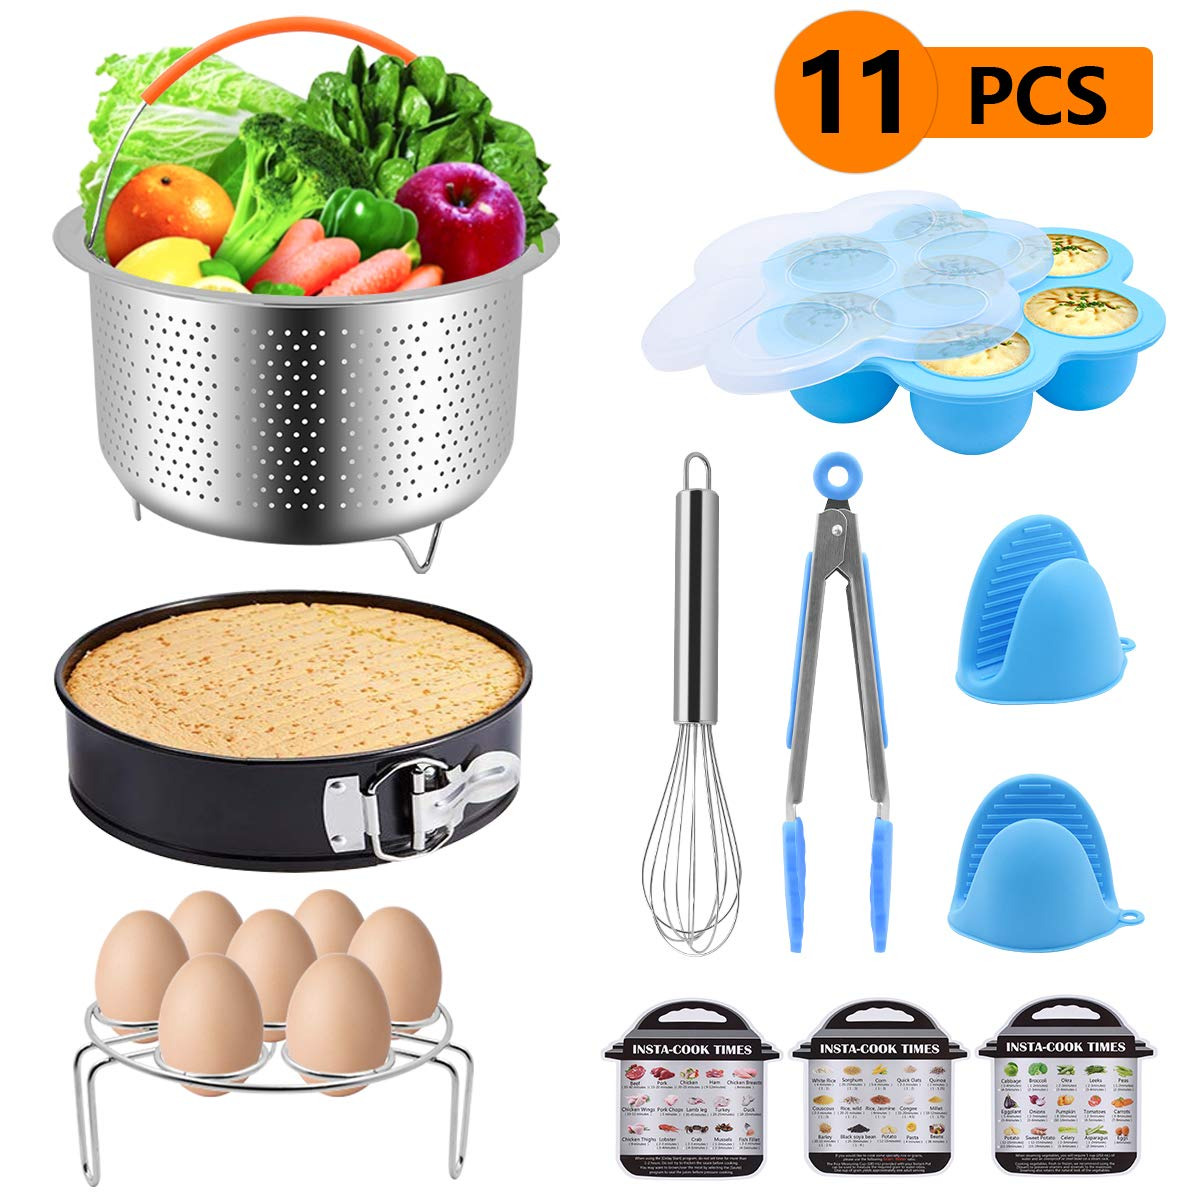 SKEY Instant Pot Accessories Set,Suitable for 5,6,8 QT Pressure Cooker,Steamer Basket,Springform Pan,Egg Bites Mold,Egg Rack,Egg Whisk, 3 Cooking time Magnets,Kitchen Tongs,Oven Mitts,11 pcs